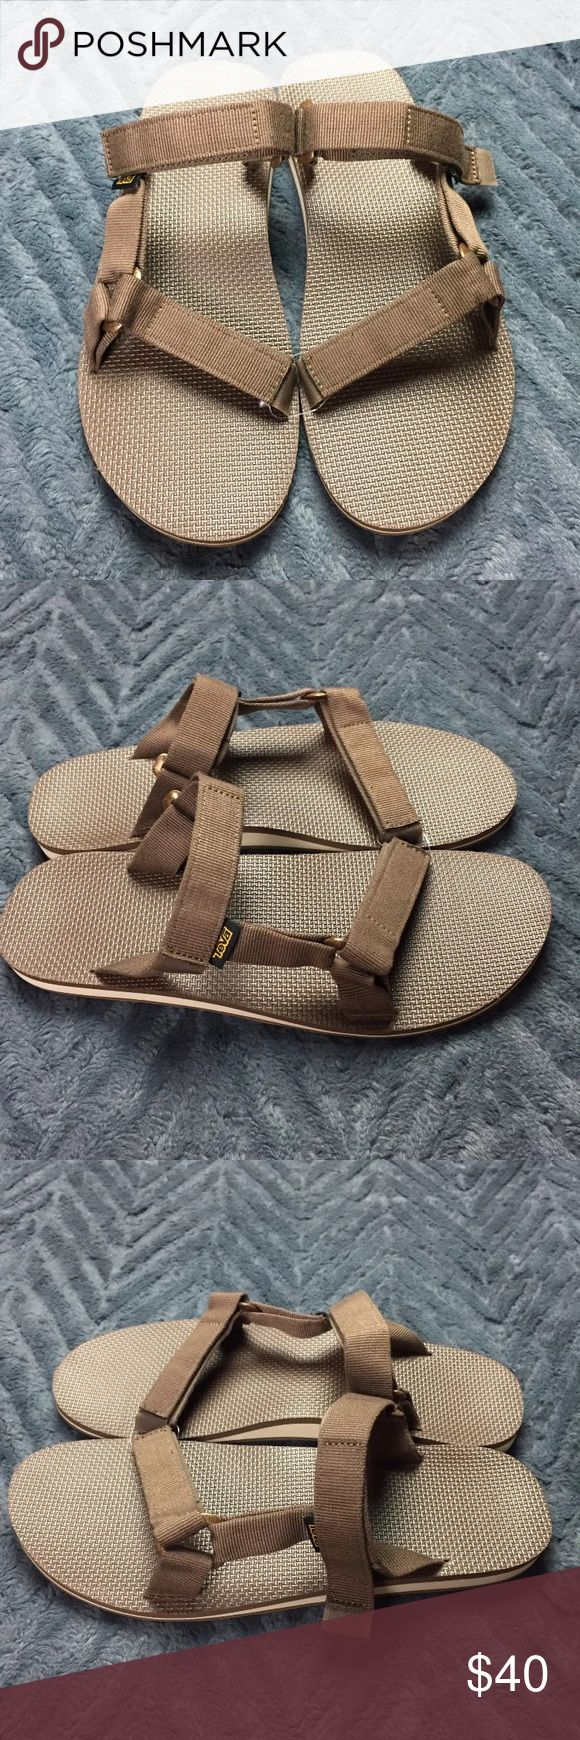 NEW Teva Original Universal Slide Flip Flop Sandal Brand new no box/tag! Teva Original Universal Slide Brown size 14 -Water-ready polyester webbing upper is extremely durable and dries quickly after getting wet -Easy hook-and-loop closure comes on and off quickly and gets the fit just right  -Universal Strapping System EVA foam footbed cushions and softly supports for all-day comfort  -Rubber outsole Teva Shoes Sandals & Flip-Flops